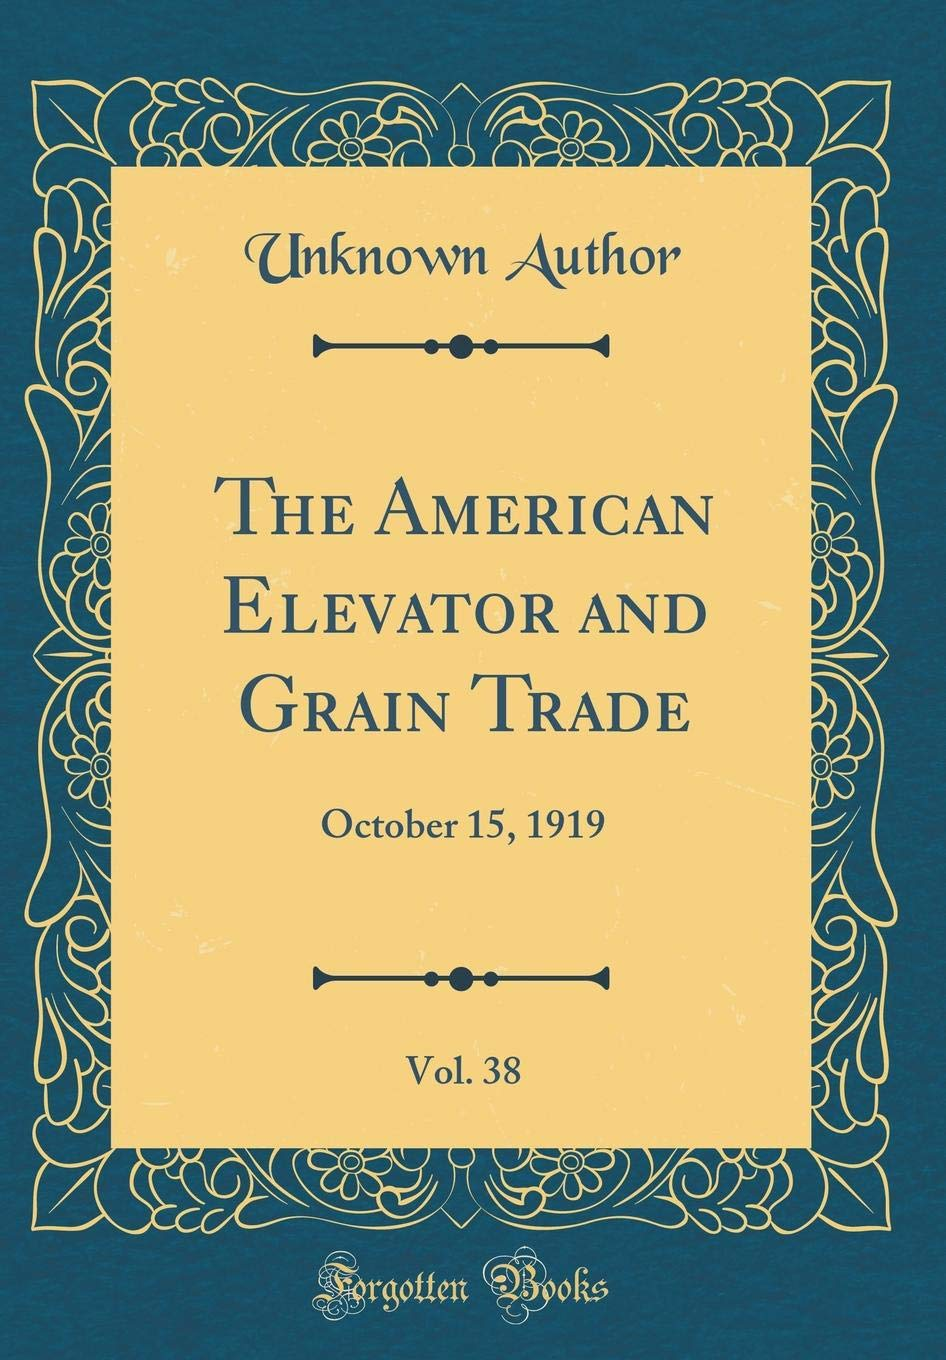 The American Elevator and Grain Trade, Vol. 38: October 15, 1919 (Classic Reprint) pdf